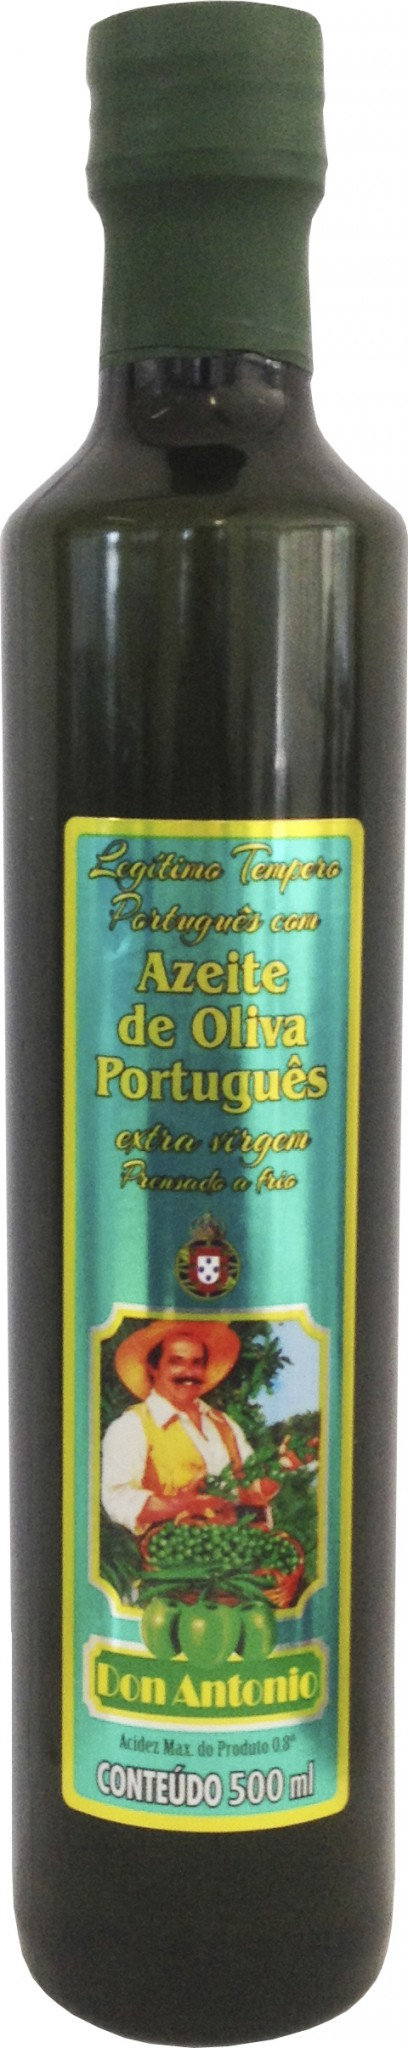 Azeite Don Antonio EV Inquebrável 500ml